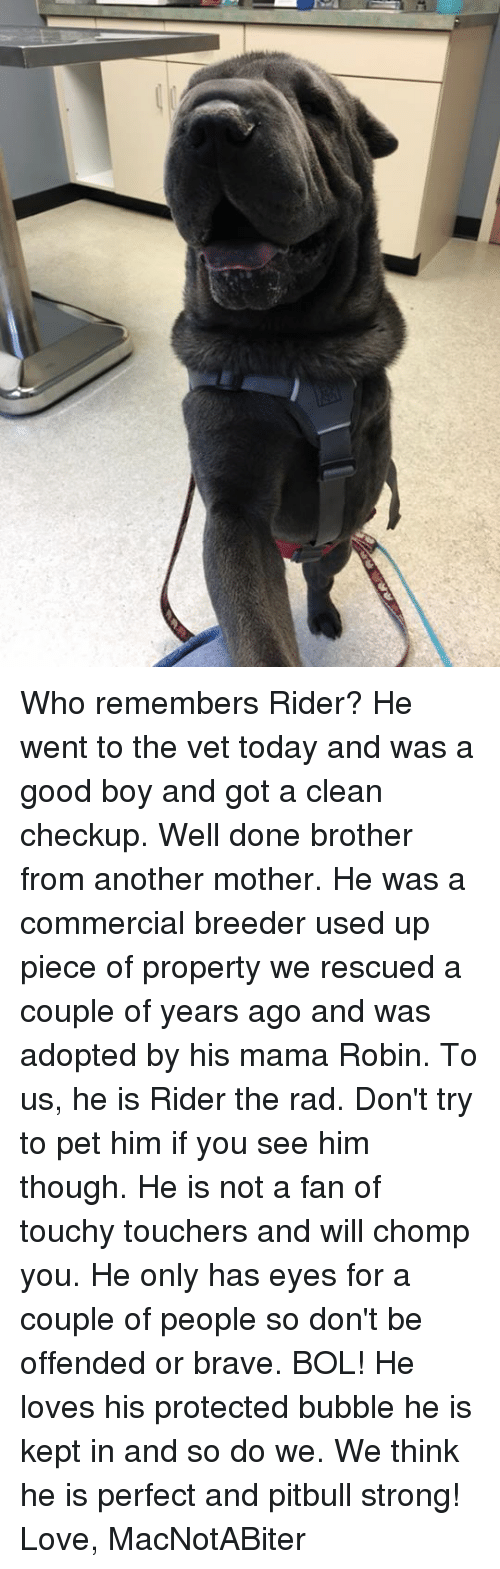 Love, Memes, and Pitbull: Who remembers Rider? He went to the vet today and was a good boy and got a clean checkup. Well done brother from another mother. He was a commercial breeder used up piece of property we rescued a couple of years ago and was adopted by his mama Robin. To us, he is Rider the rad. Don't try to pet him if you see him though. He is not a fan of touchy touchers and will chomp you. He only has eyes for a couple of people so don't be offended or brave. BOL! He loves his protected bubble he is kept in and so do we. We think he is perfect and pitbull strong!   Love, MacNotABiter